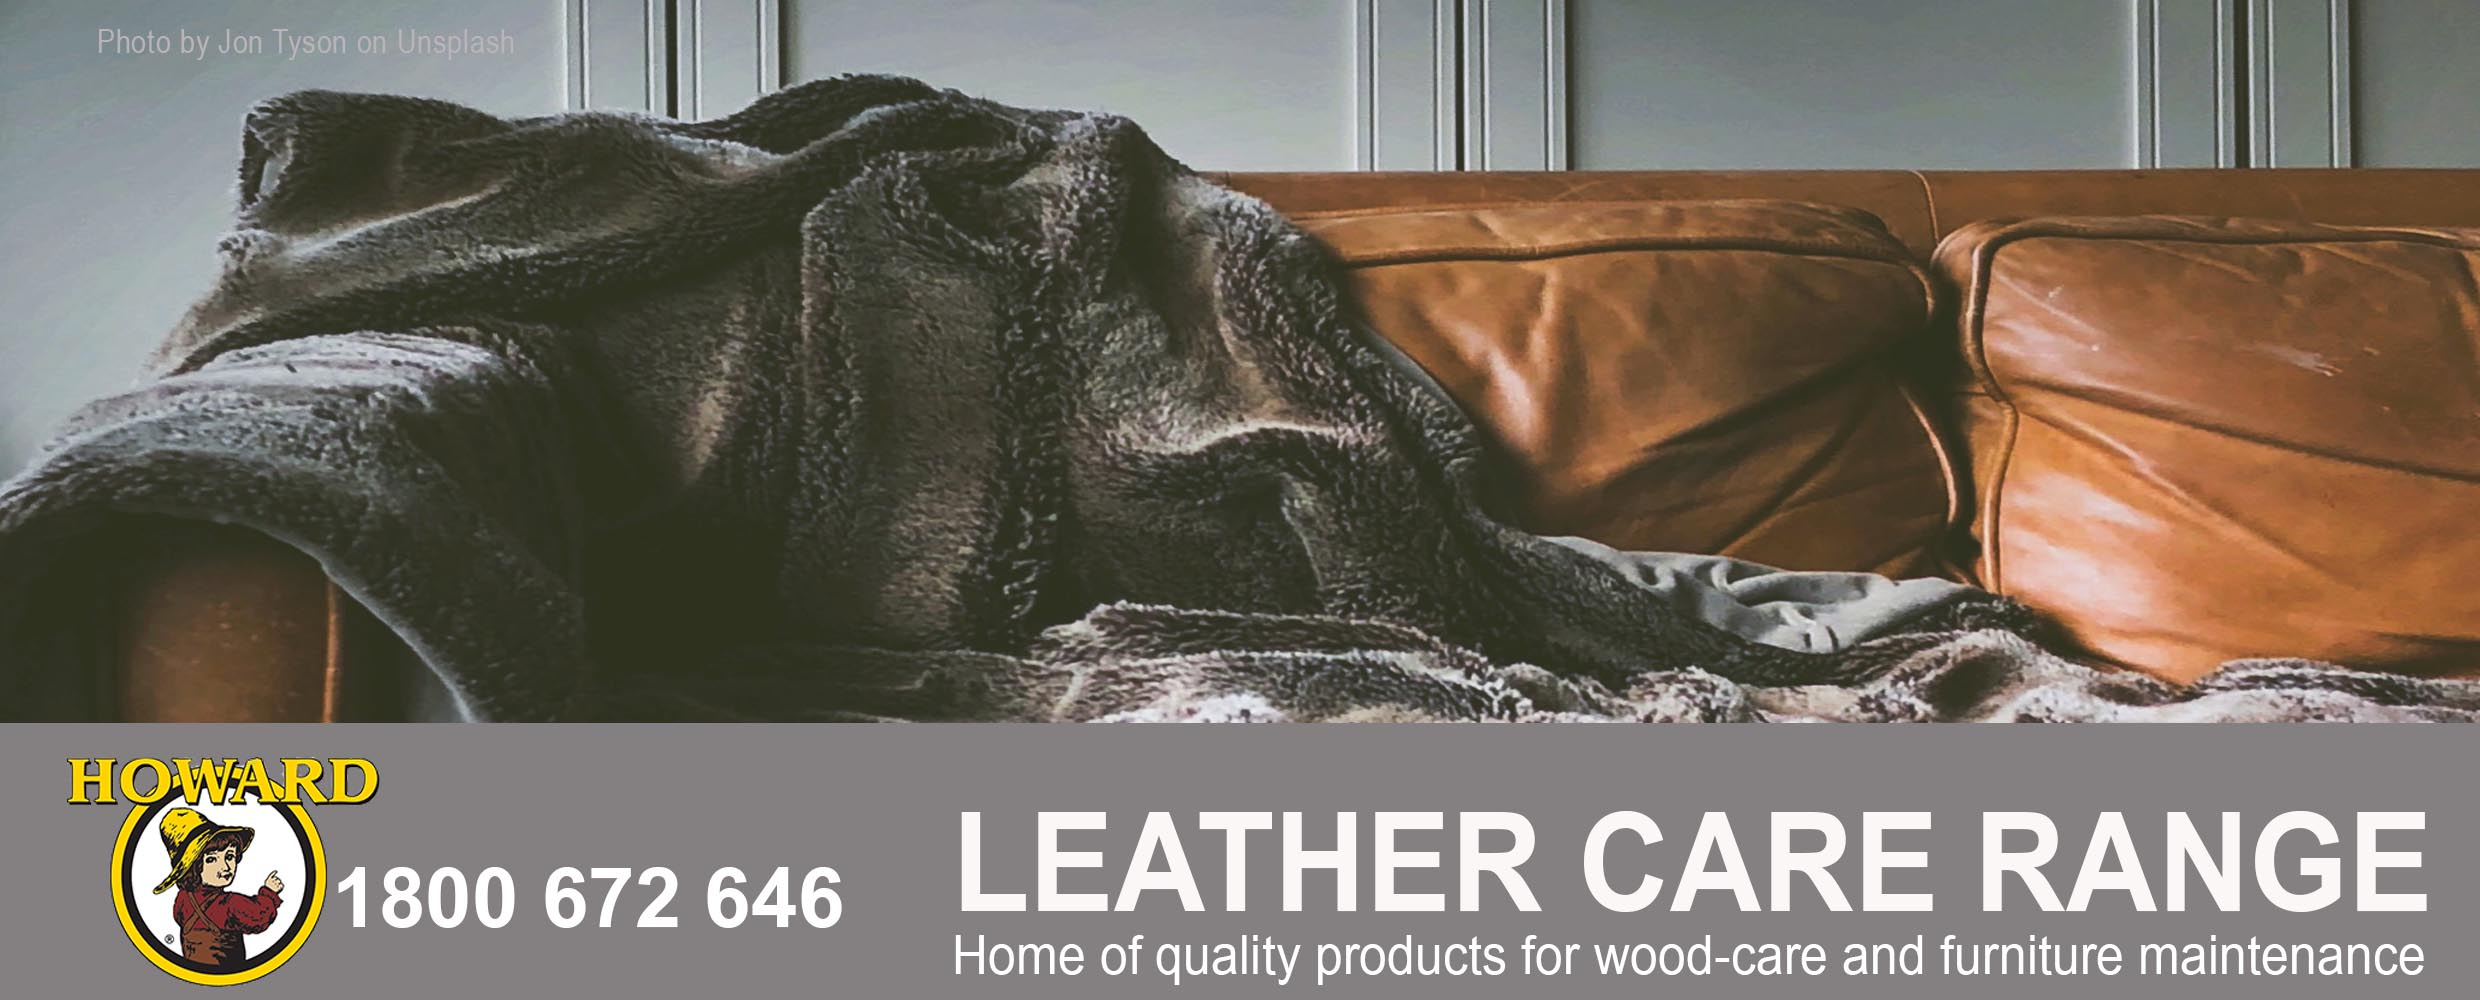 How-To-Prevent-Cracks-and-Treat-Dry-Leather - HOWARD-PRODUCTS-LEATHER-CARE